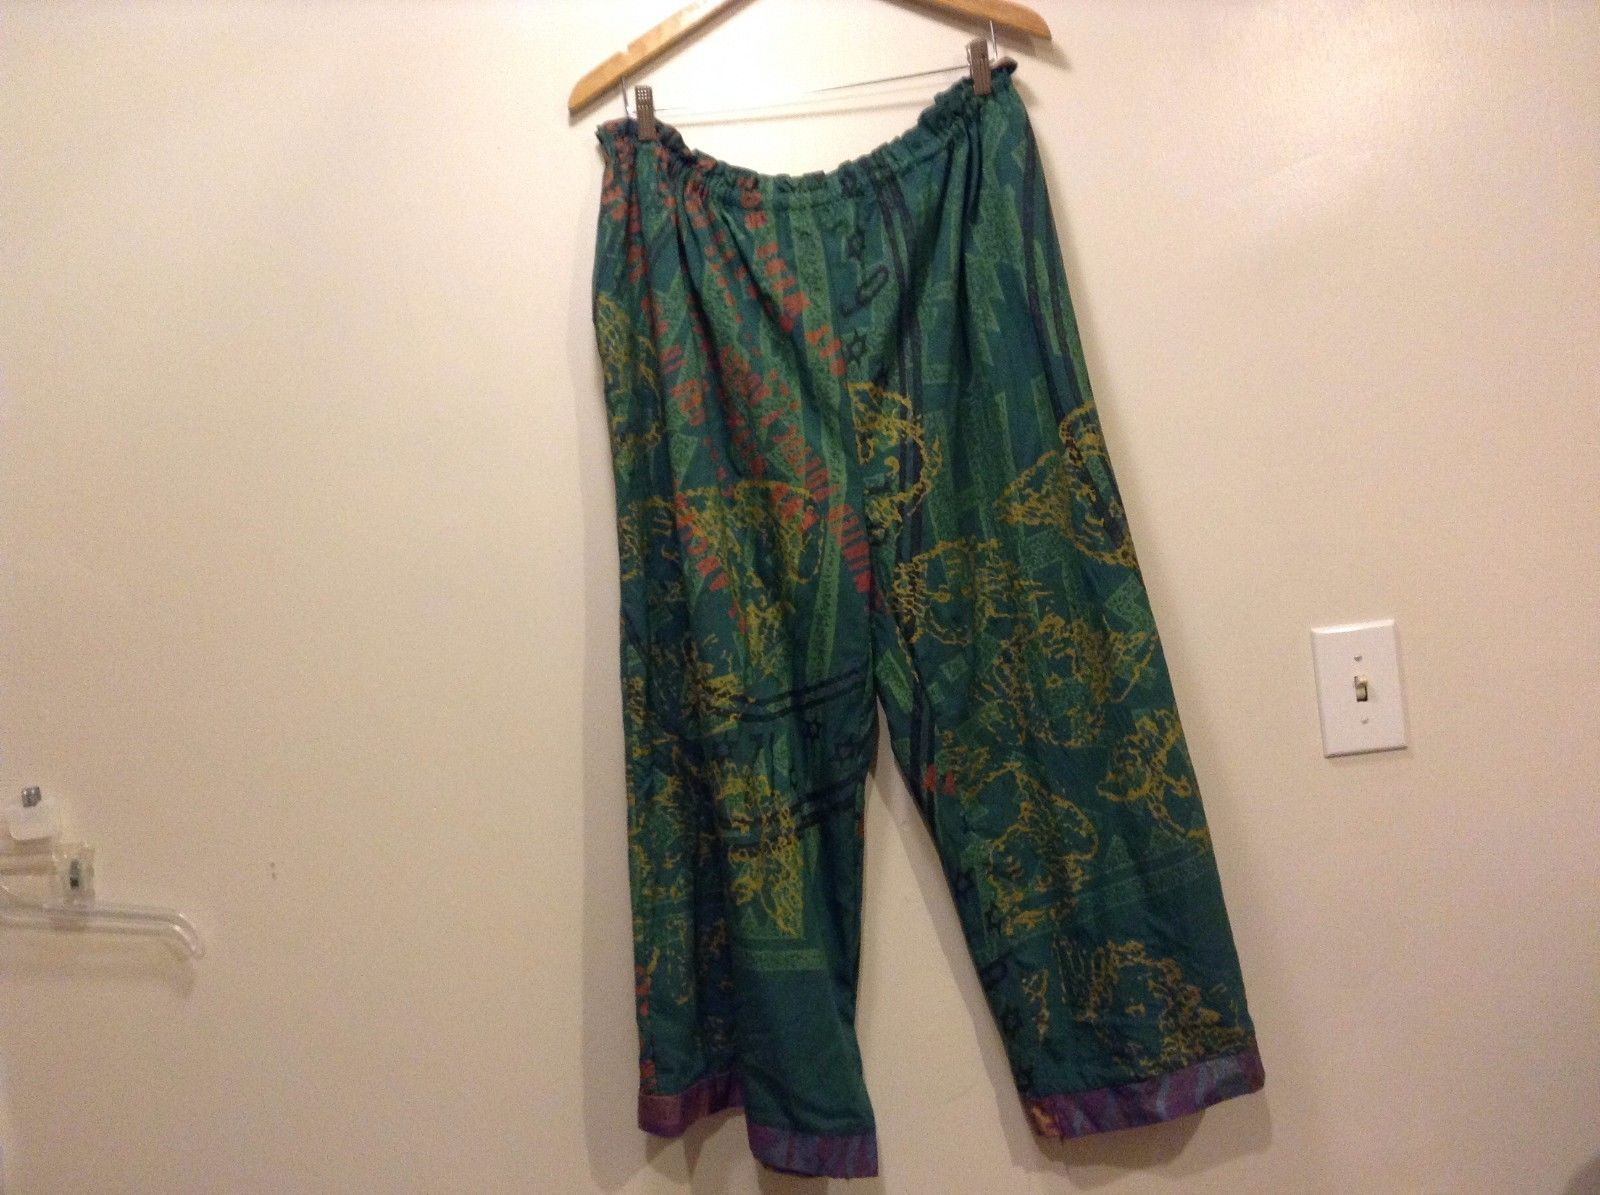 Great Condition Visual Professional One Size Fits Most Pants Rayon Blend